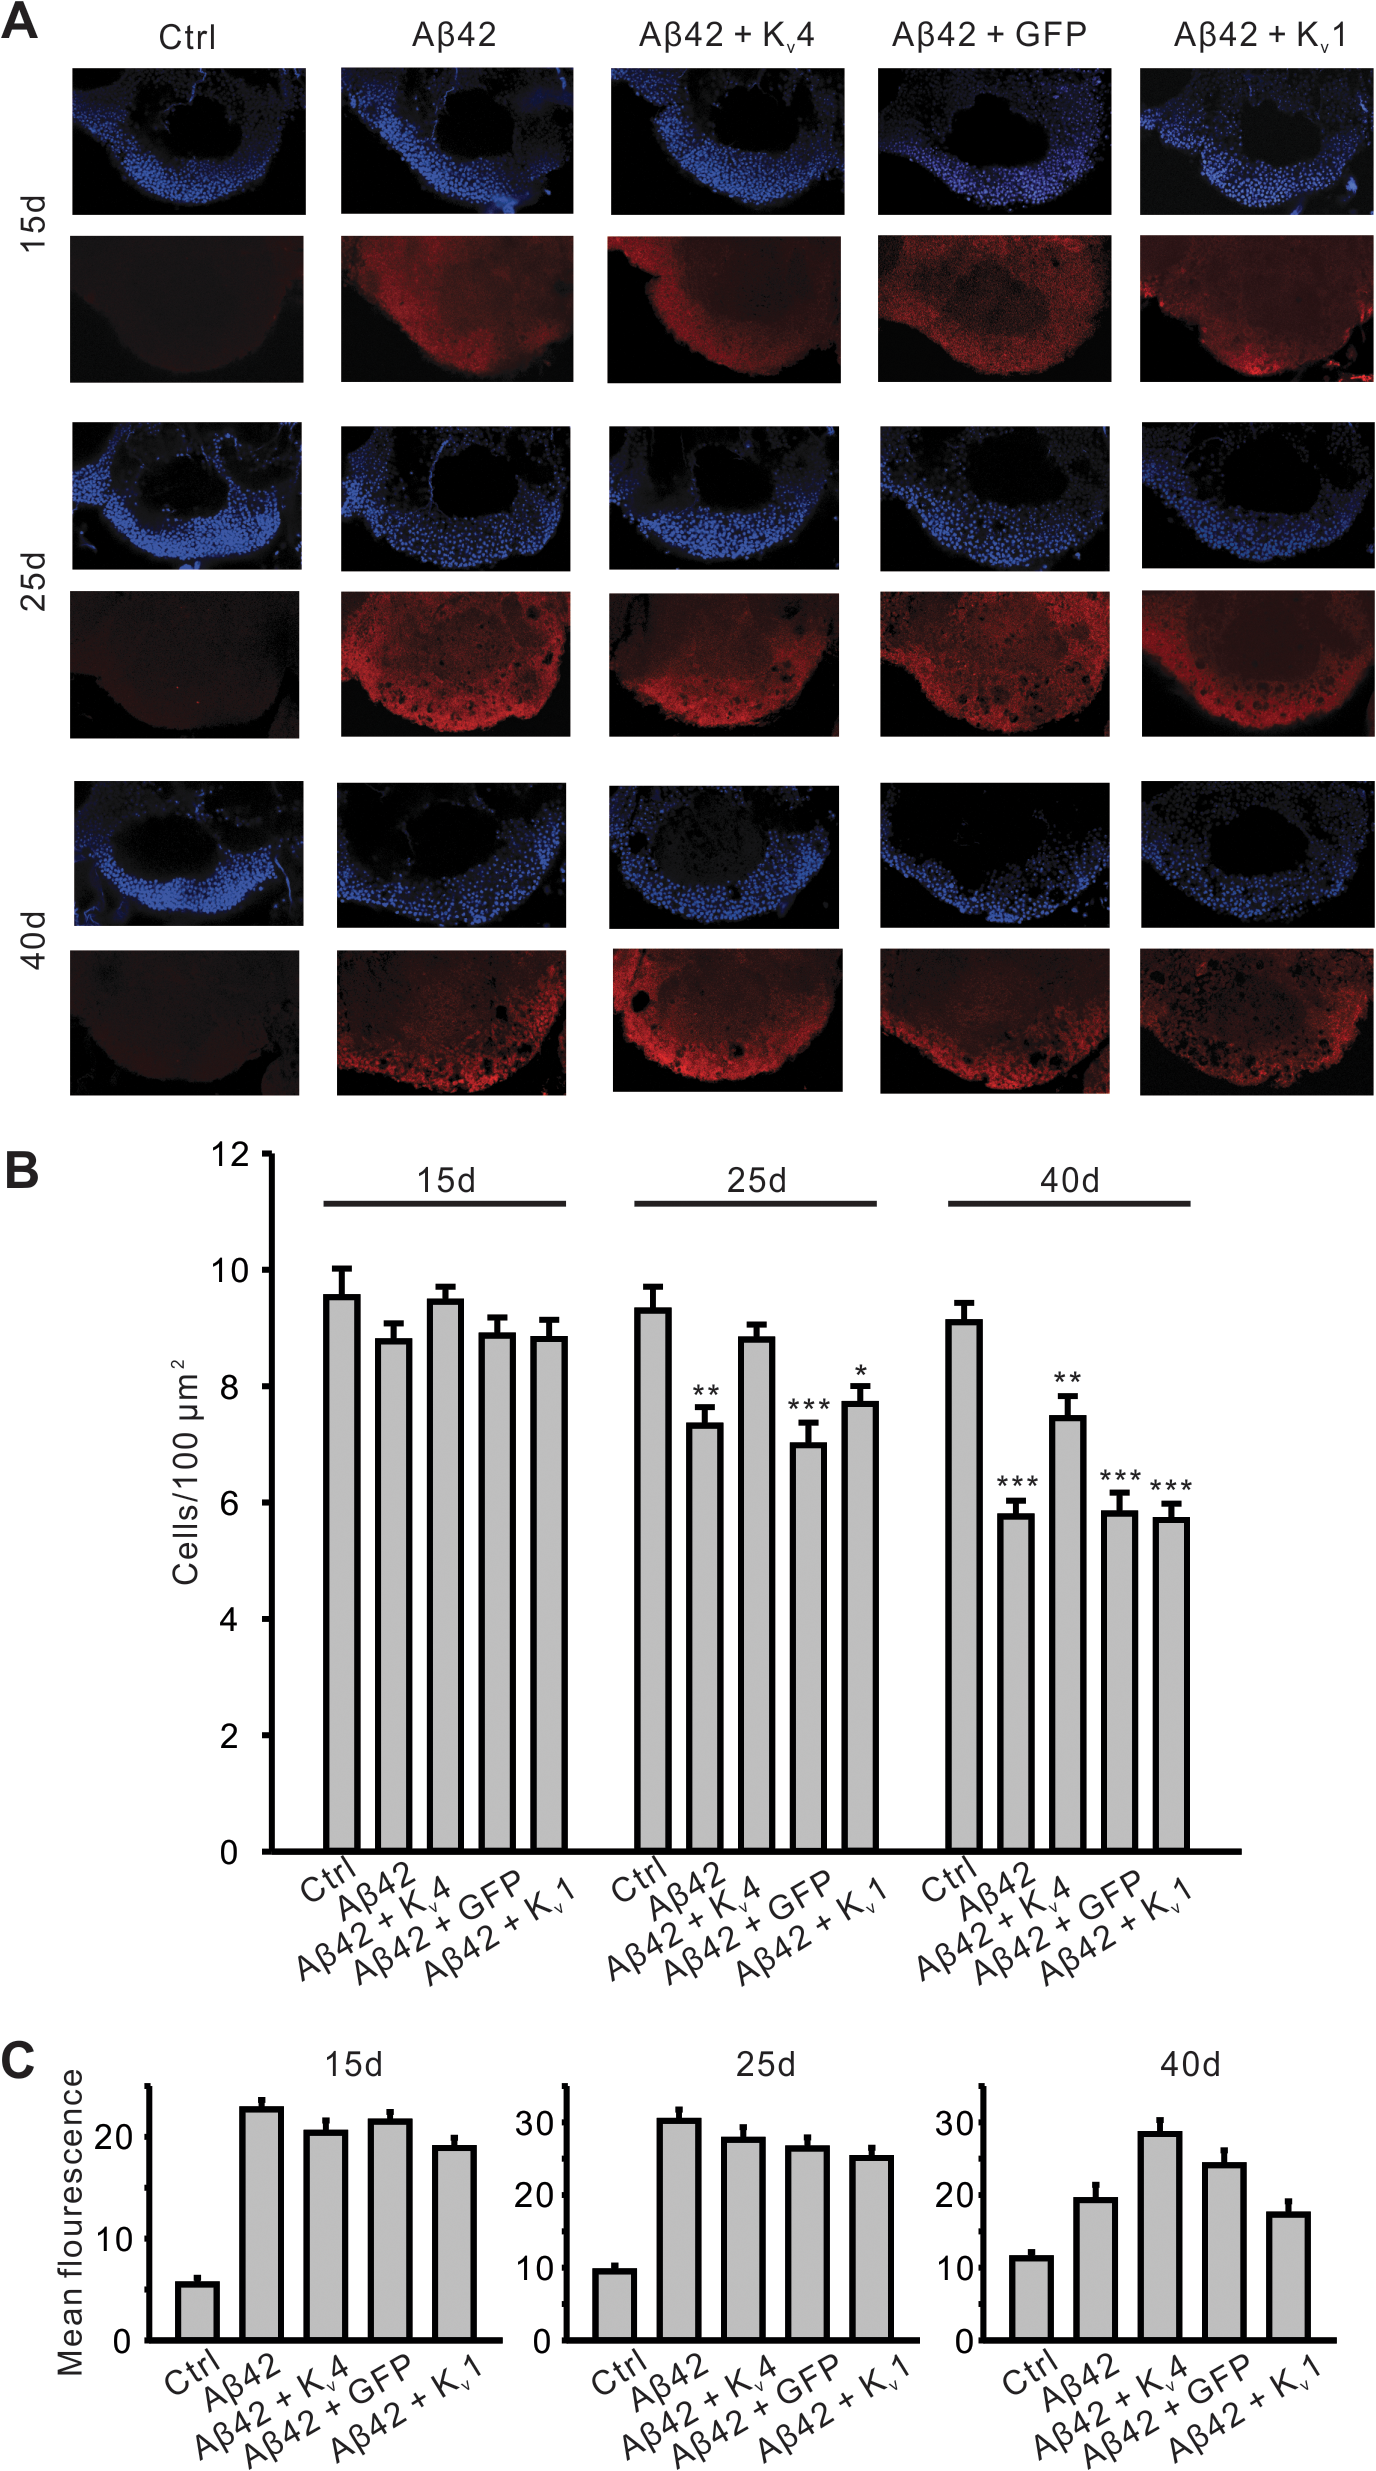 Pan-neuronal expression of K<sub>v</sub>4 slows the onset and severity of Aβ42-induced neurodegeneration.